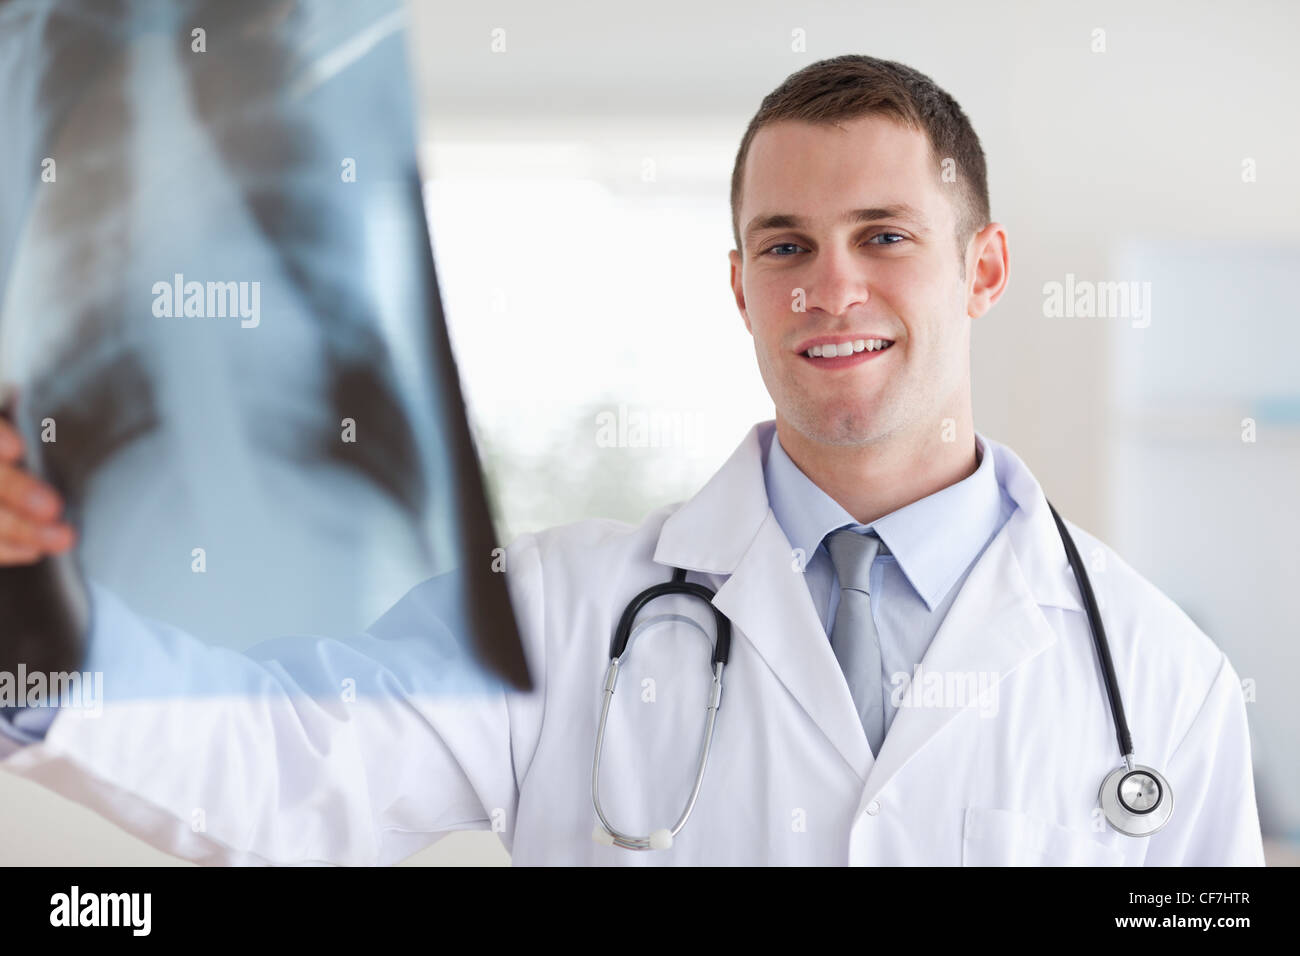 Smiling young doctor looking at x-ray - Stock Image